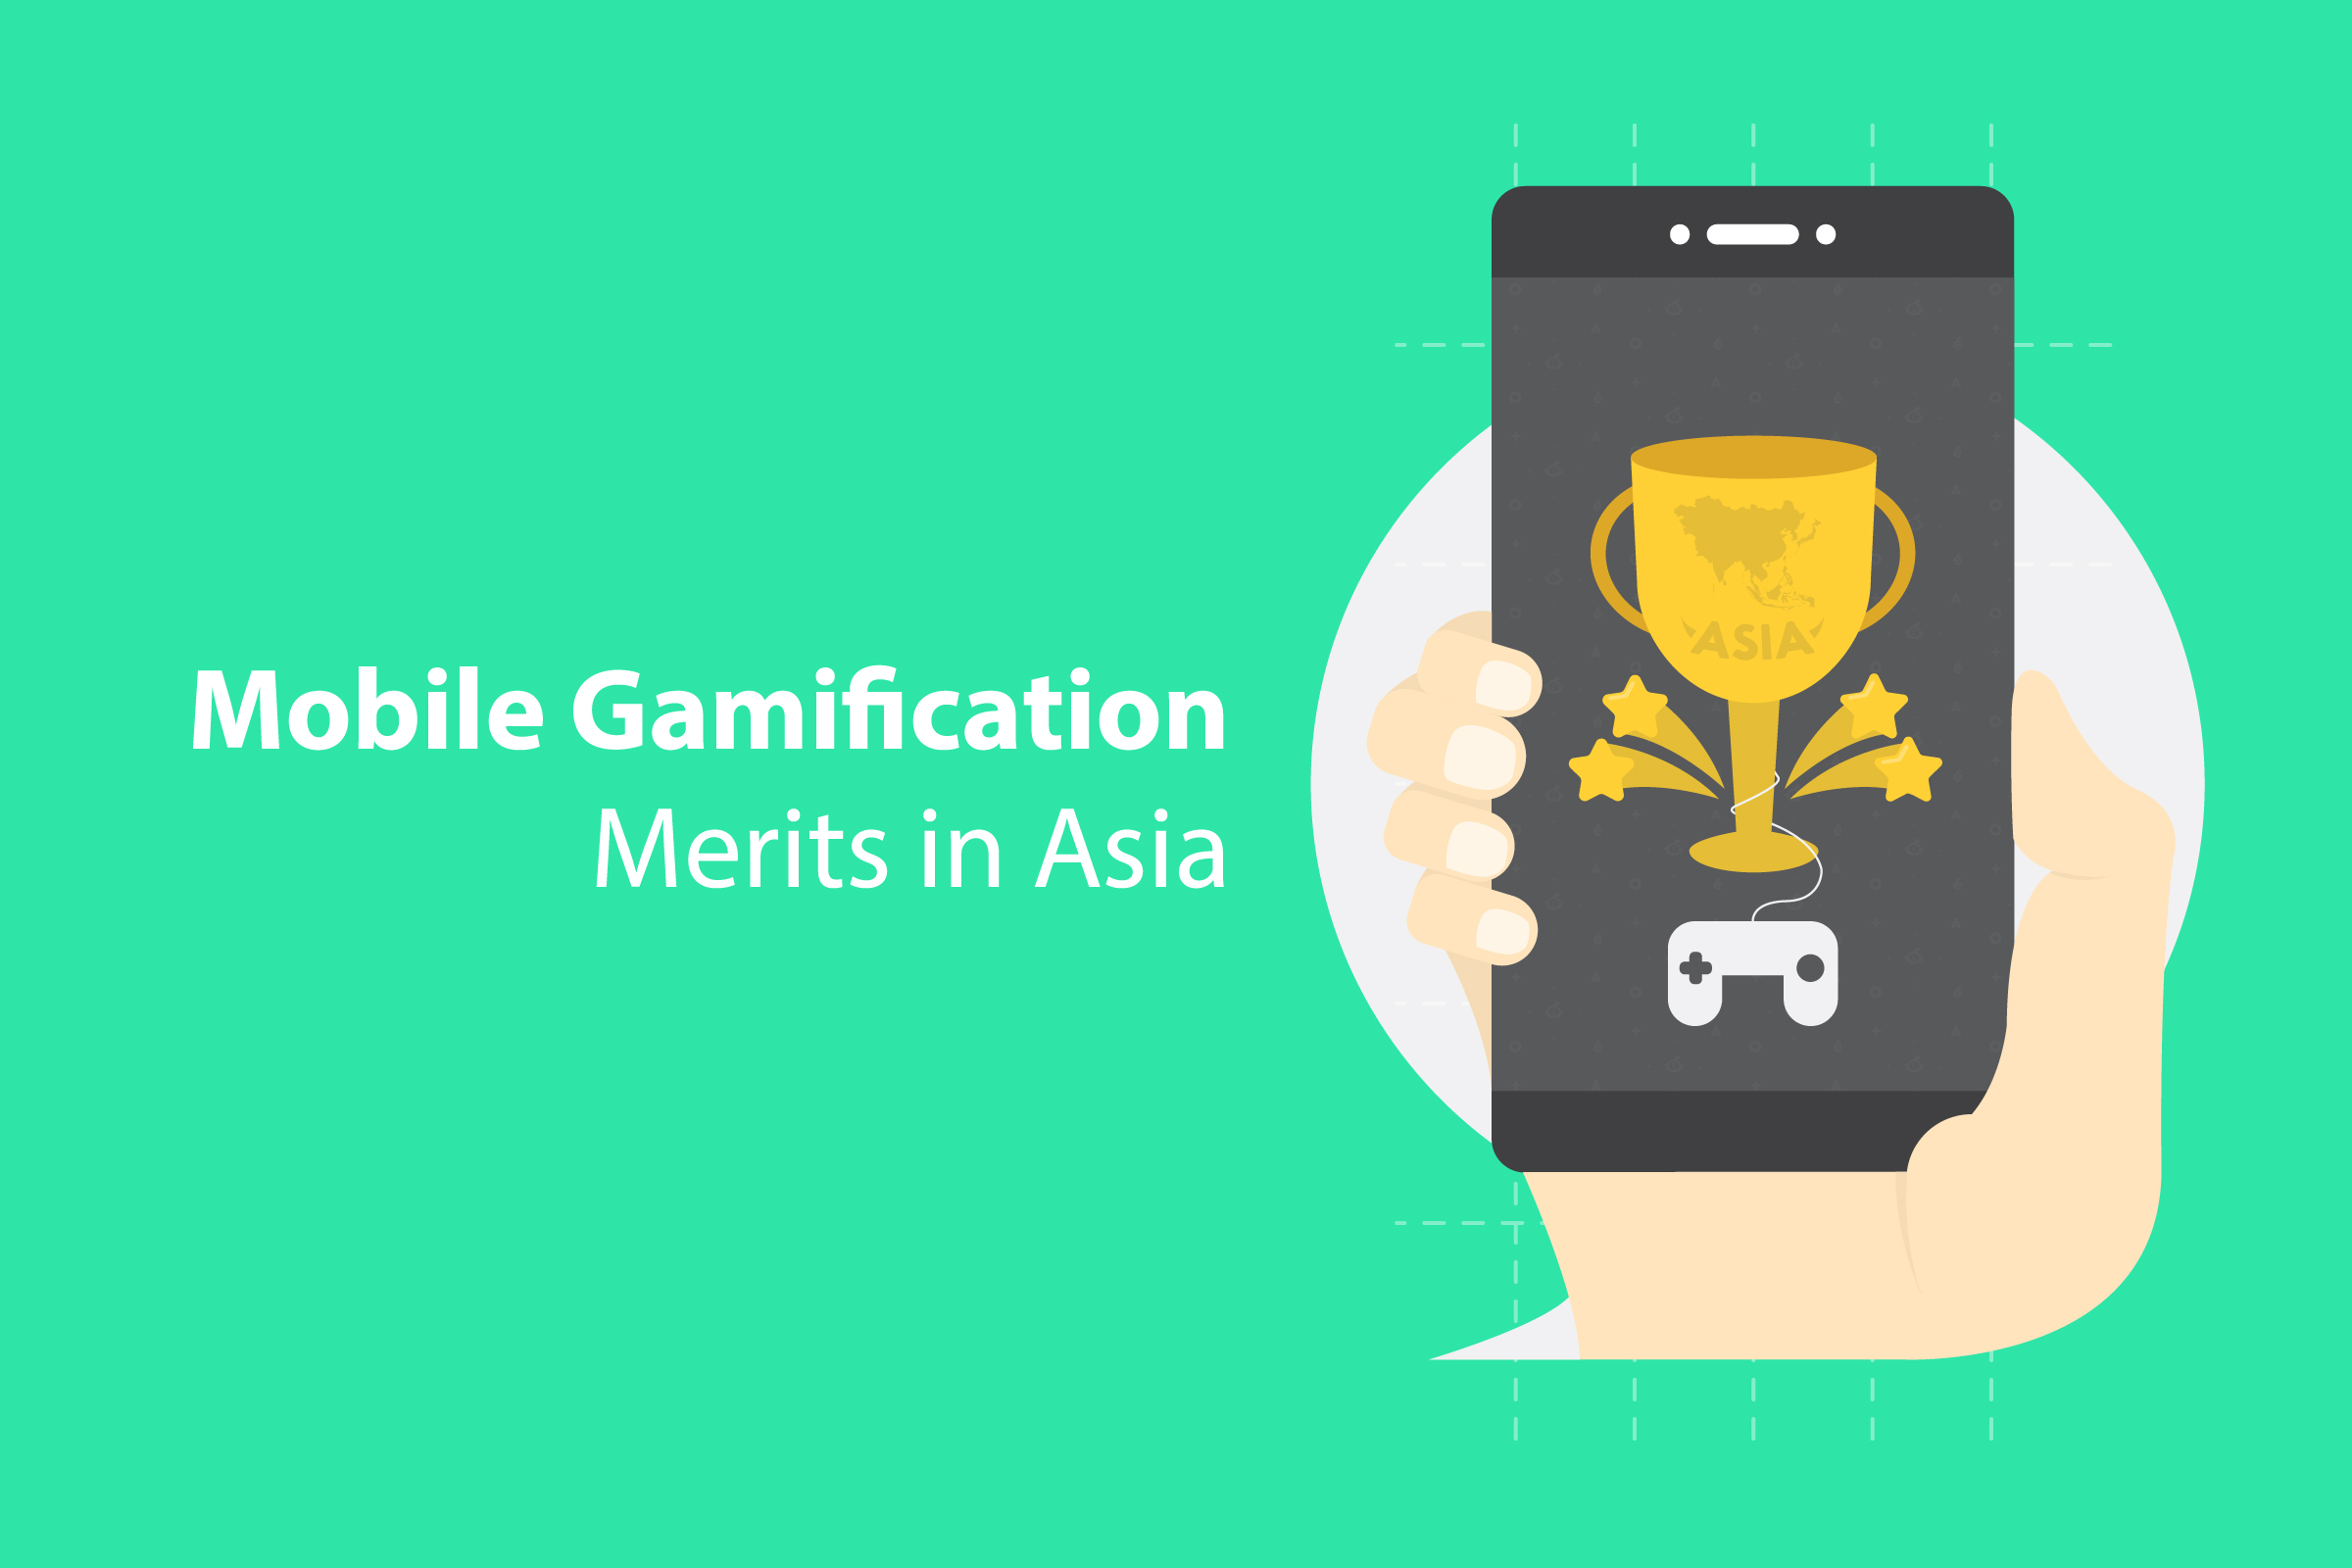 Mobile Gamification Merits in Asia